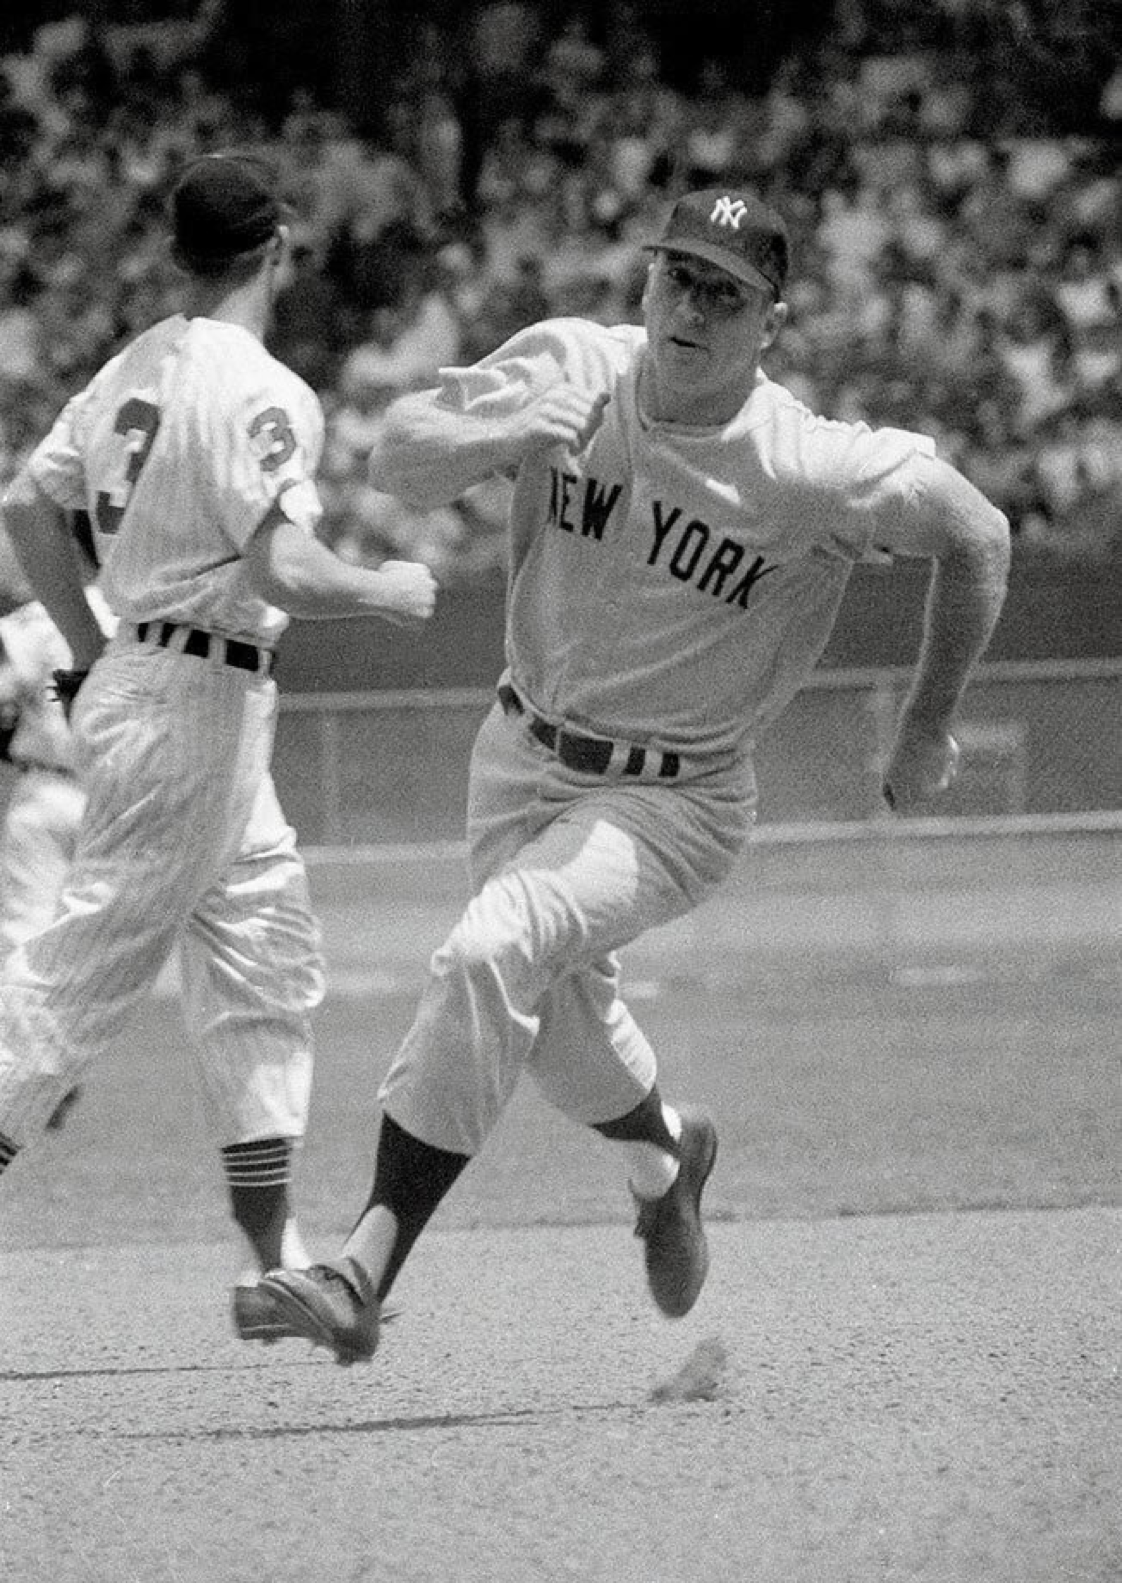 Mickey Mantle Heads For 3rd Base During During 1959 Yankee Indians Game In Cleveland Yankees Indians Mickey Mantle Baseball History New York Yankees Baseball